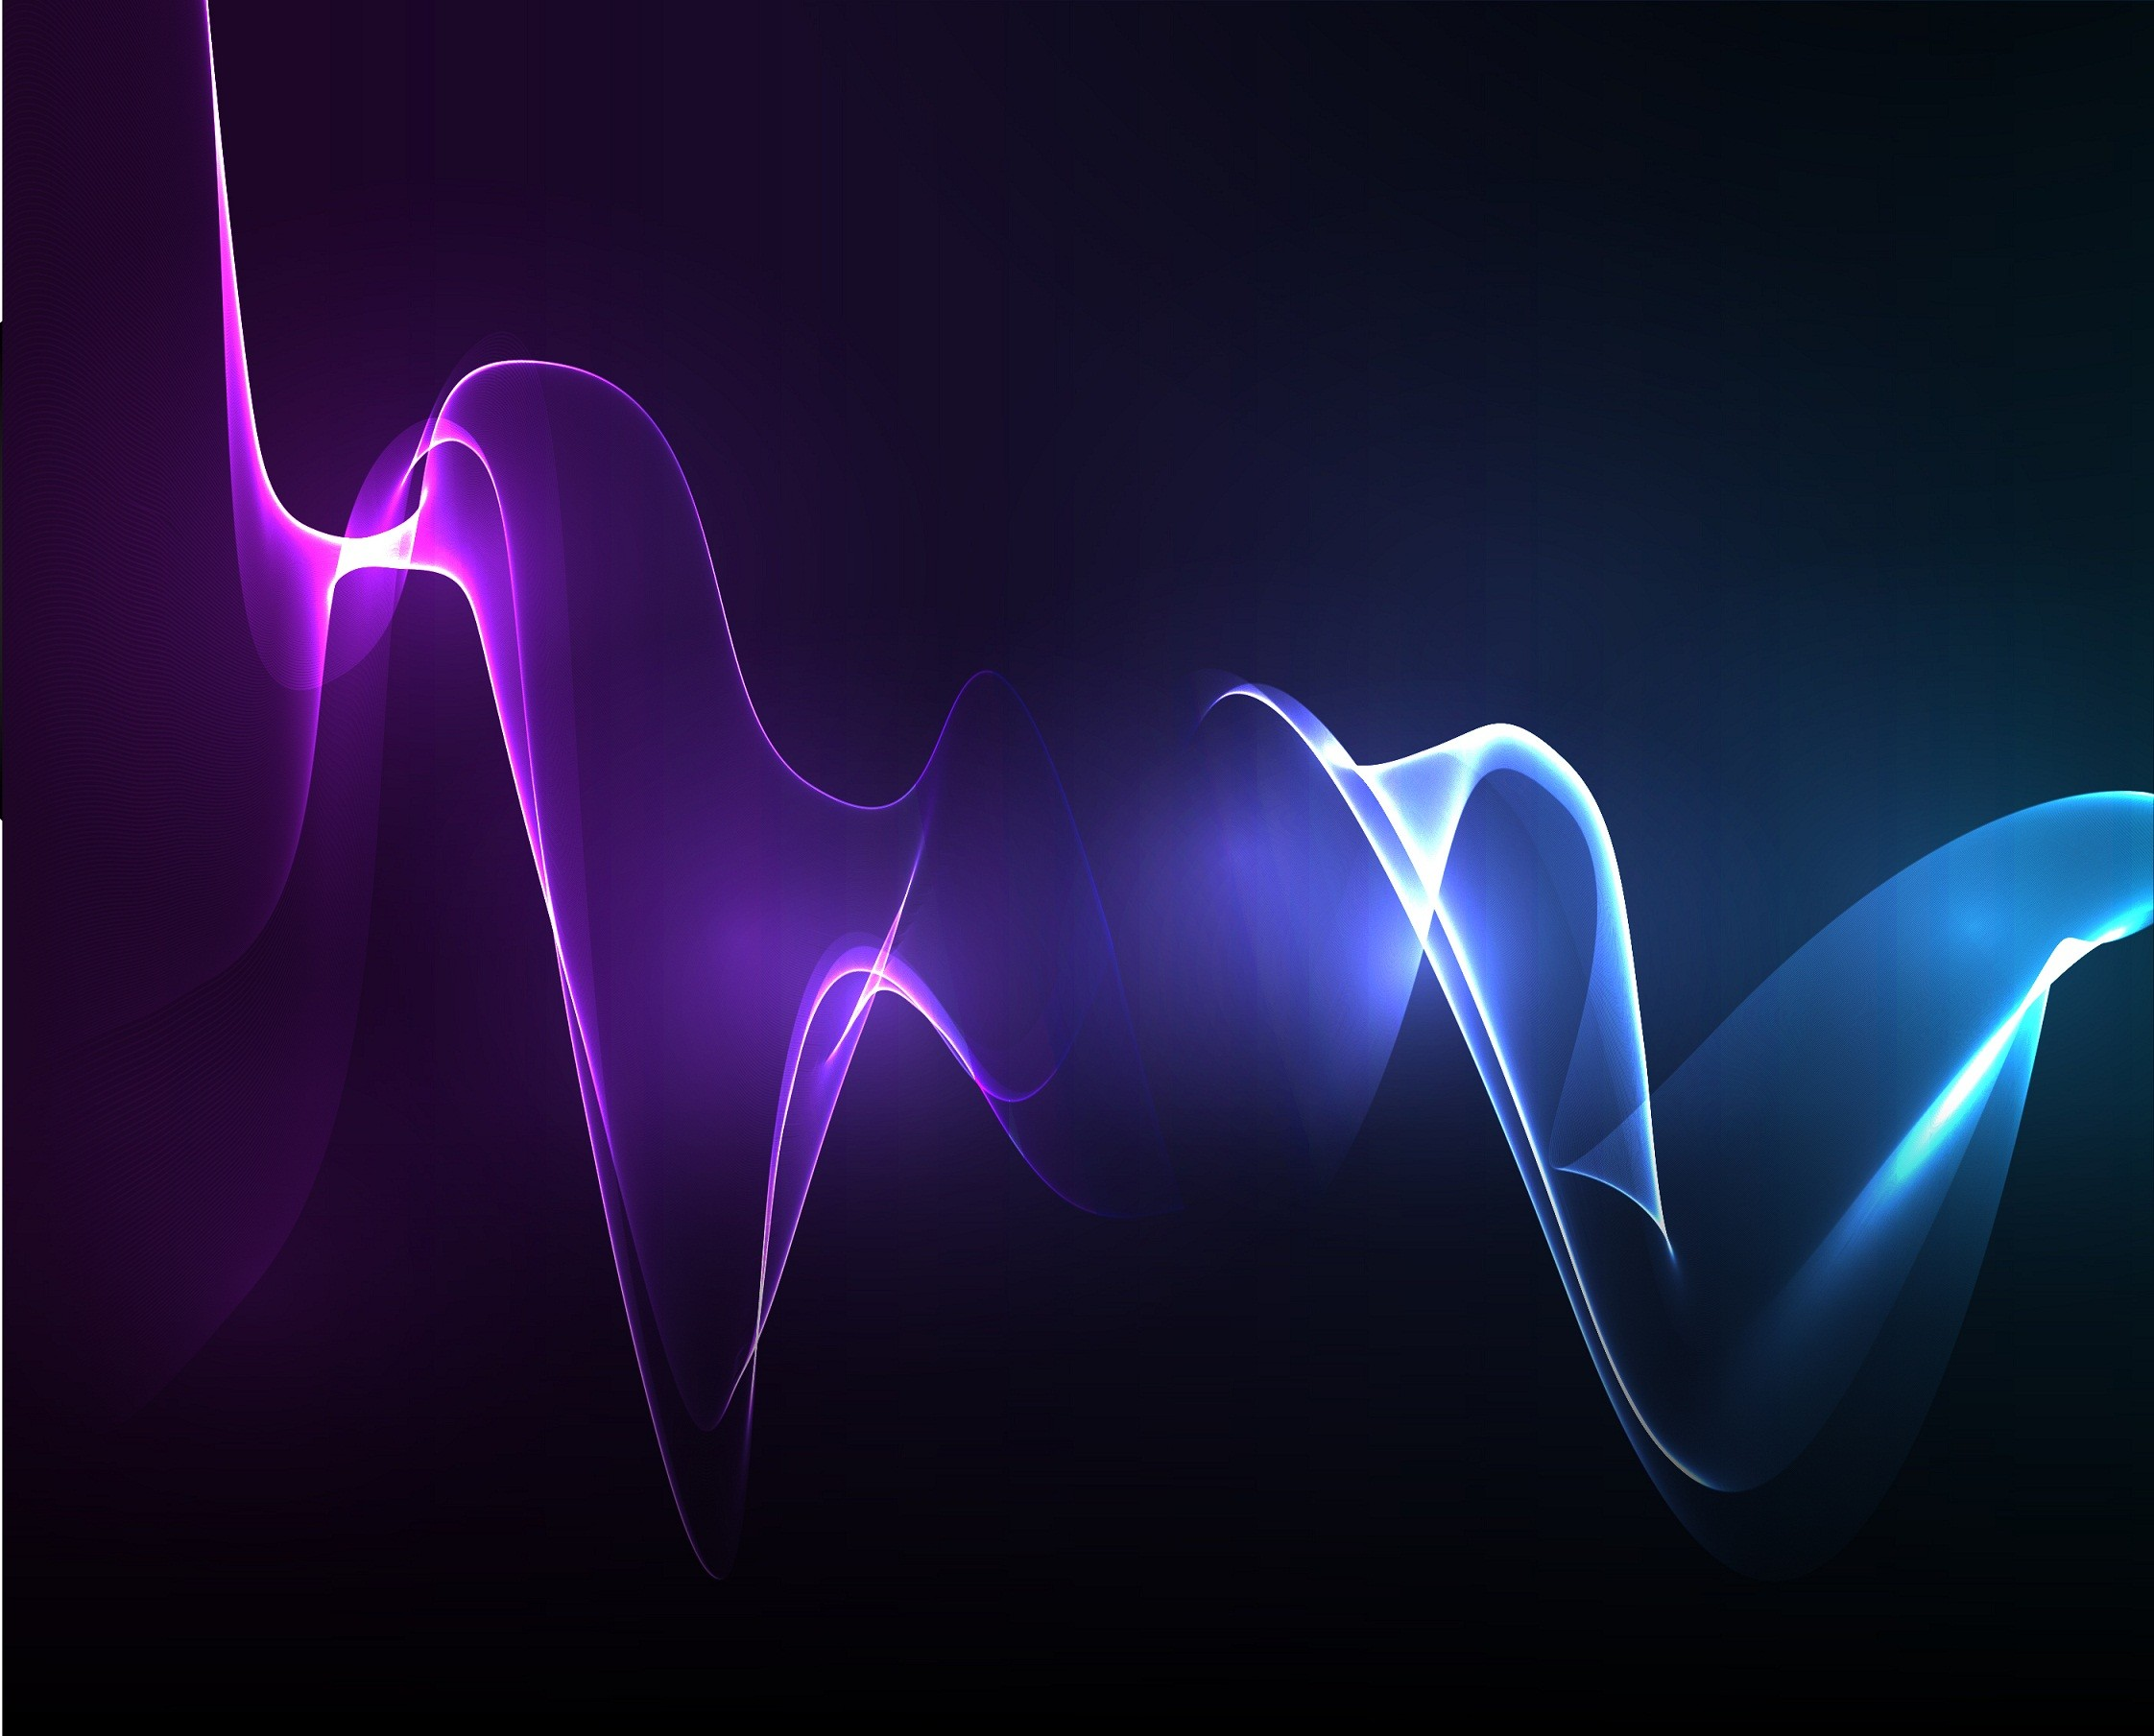 Dynamic Wallpaper 1 Download Free Hd Backgrounds For